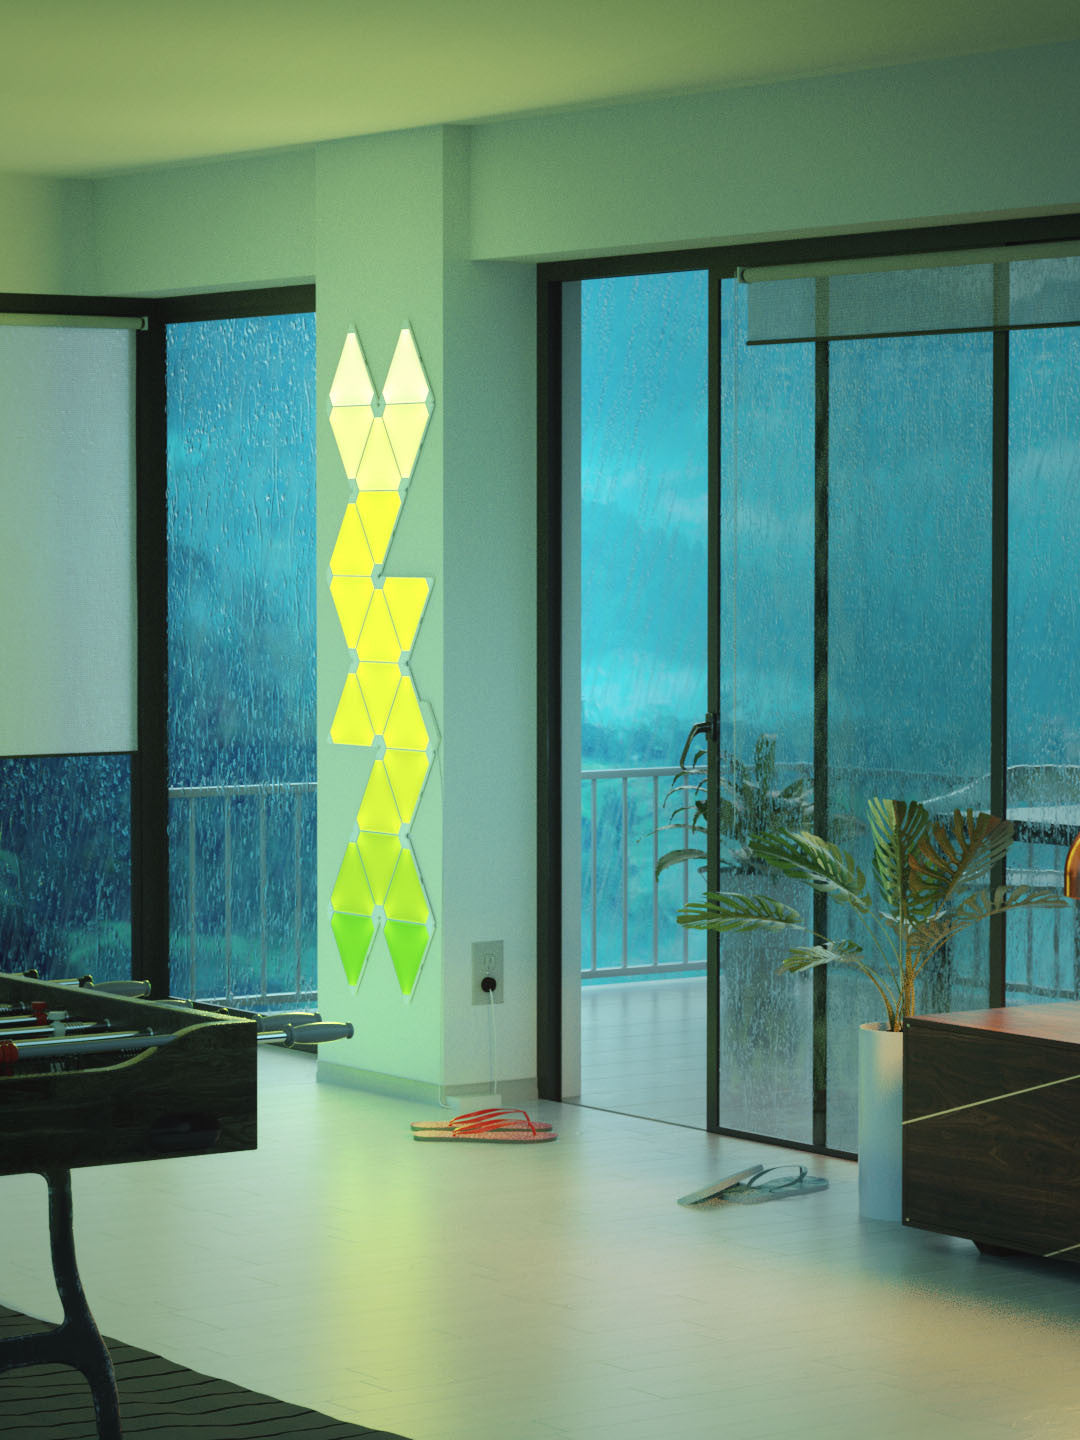 Nanoleaf Aurora India, It's the light for you- Color it, Now in India, Nanoleaf Aurora, Aurora, Revolutionary mood lights, Mood lighting, color lights, light panels, Play with colors, Make walls your canvas, Lighting creativity, live the lights